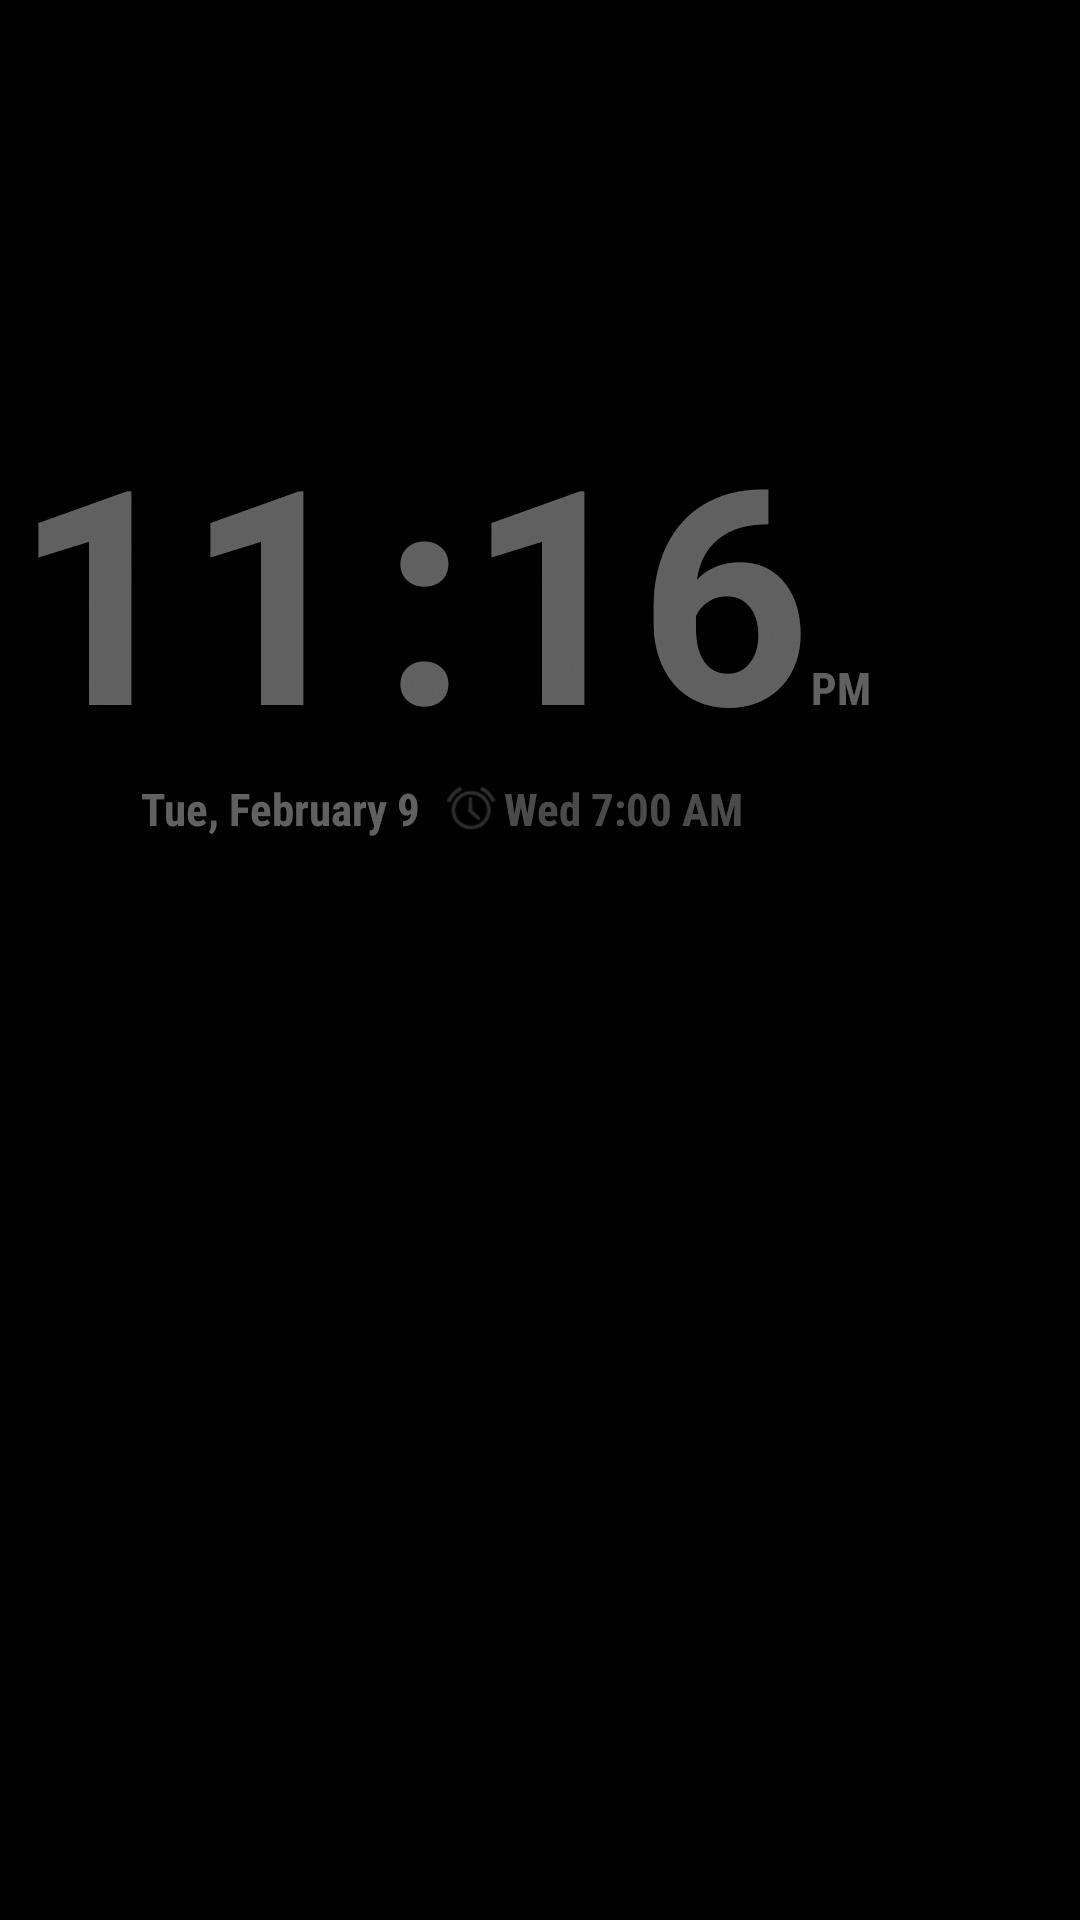 Five tips and tricks for using the ASUS Clock app   Mobile   ASUS Global